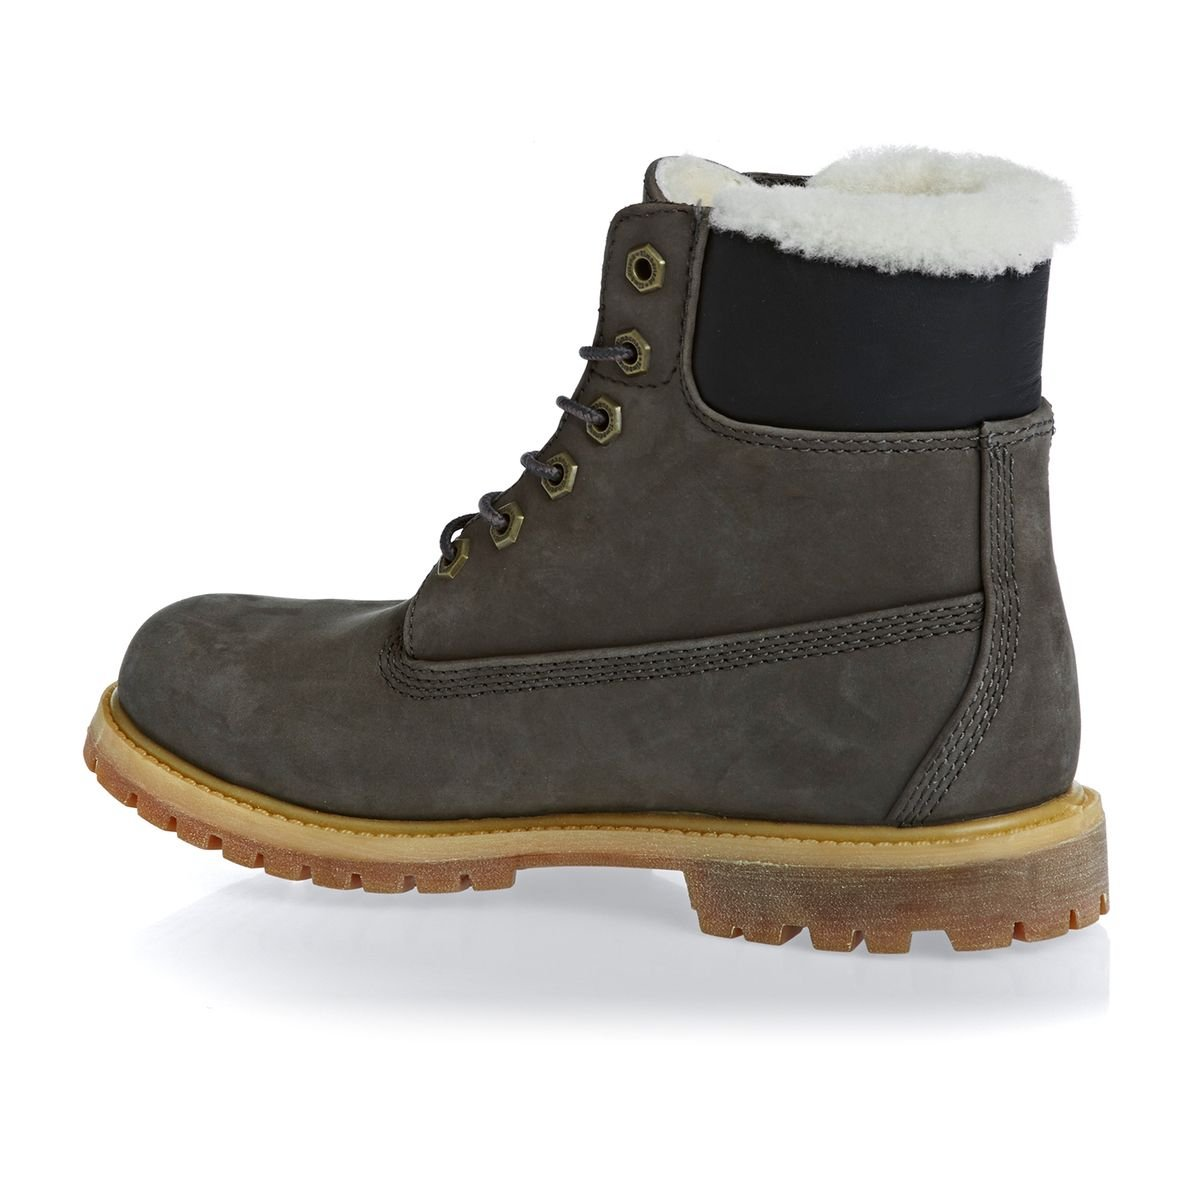 Timberland 6 INCH PREMIUM avvio SHEARLING LINED LINED LINED donna | Outlet Store  | Uomo/Donna Scarpa  2d41f5